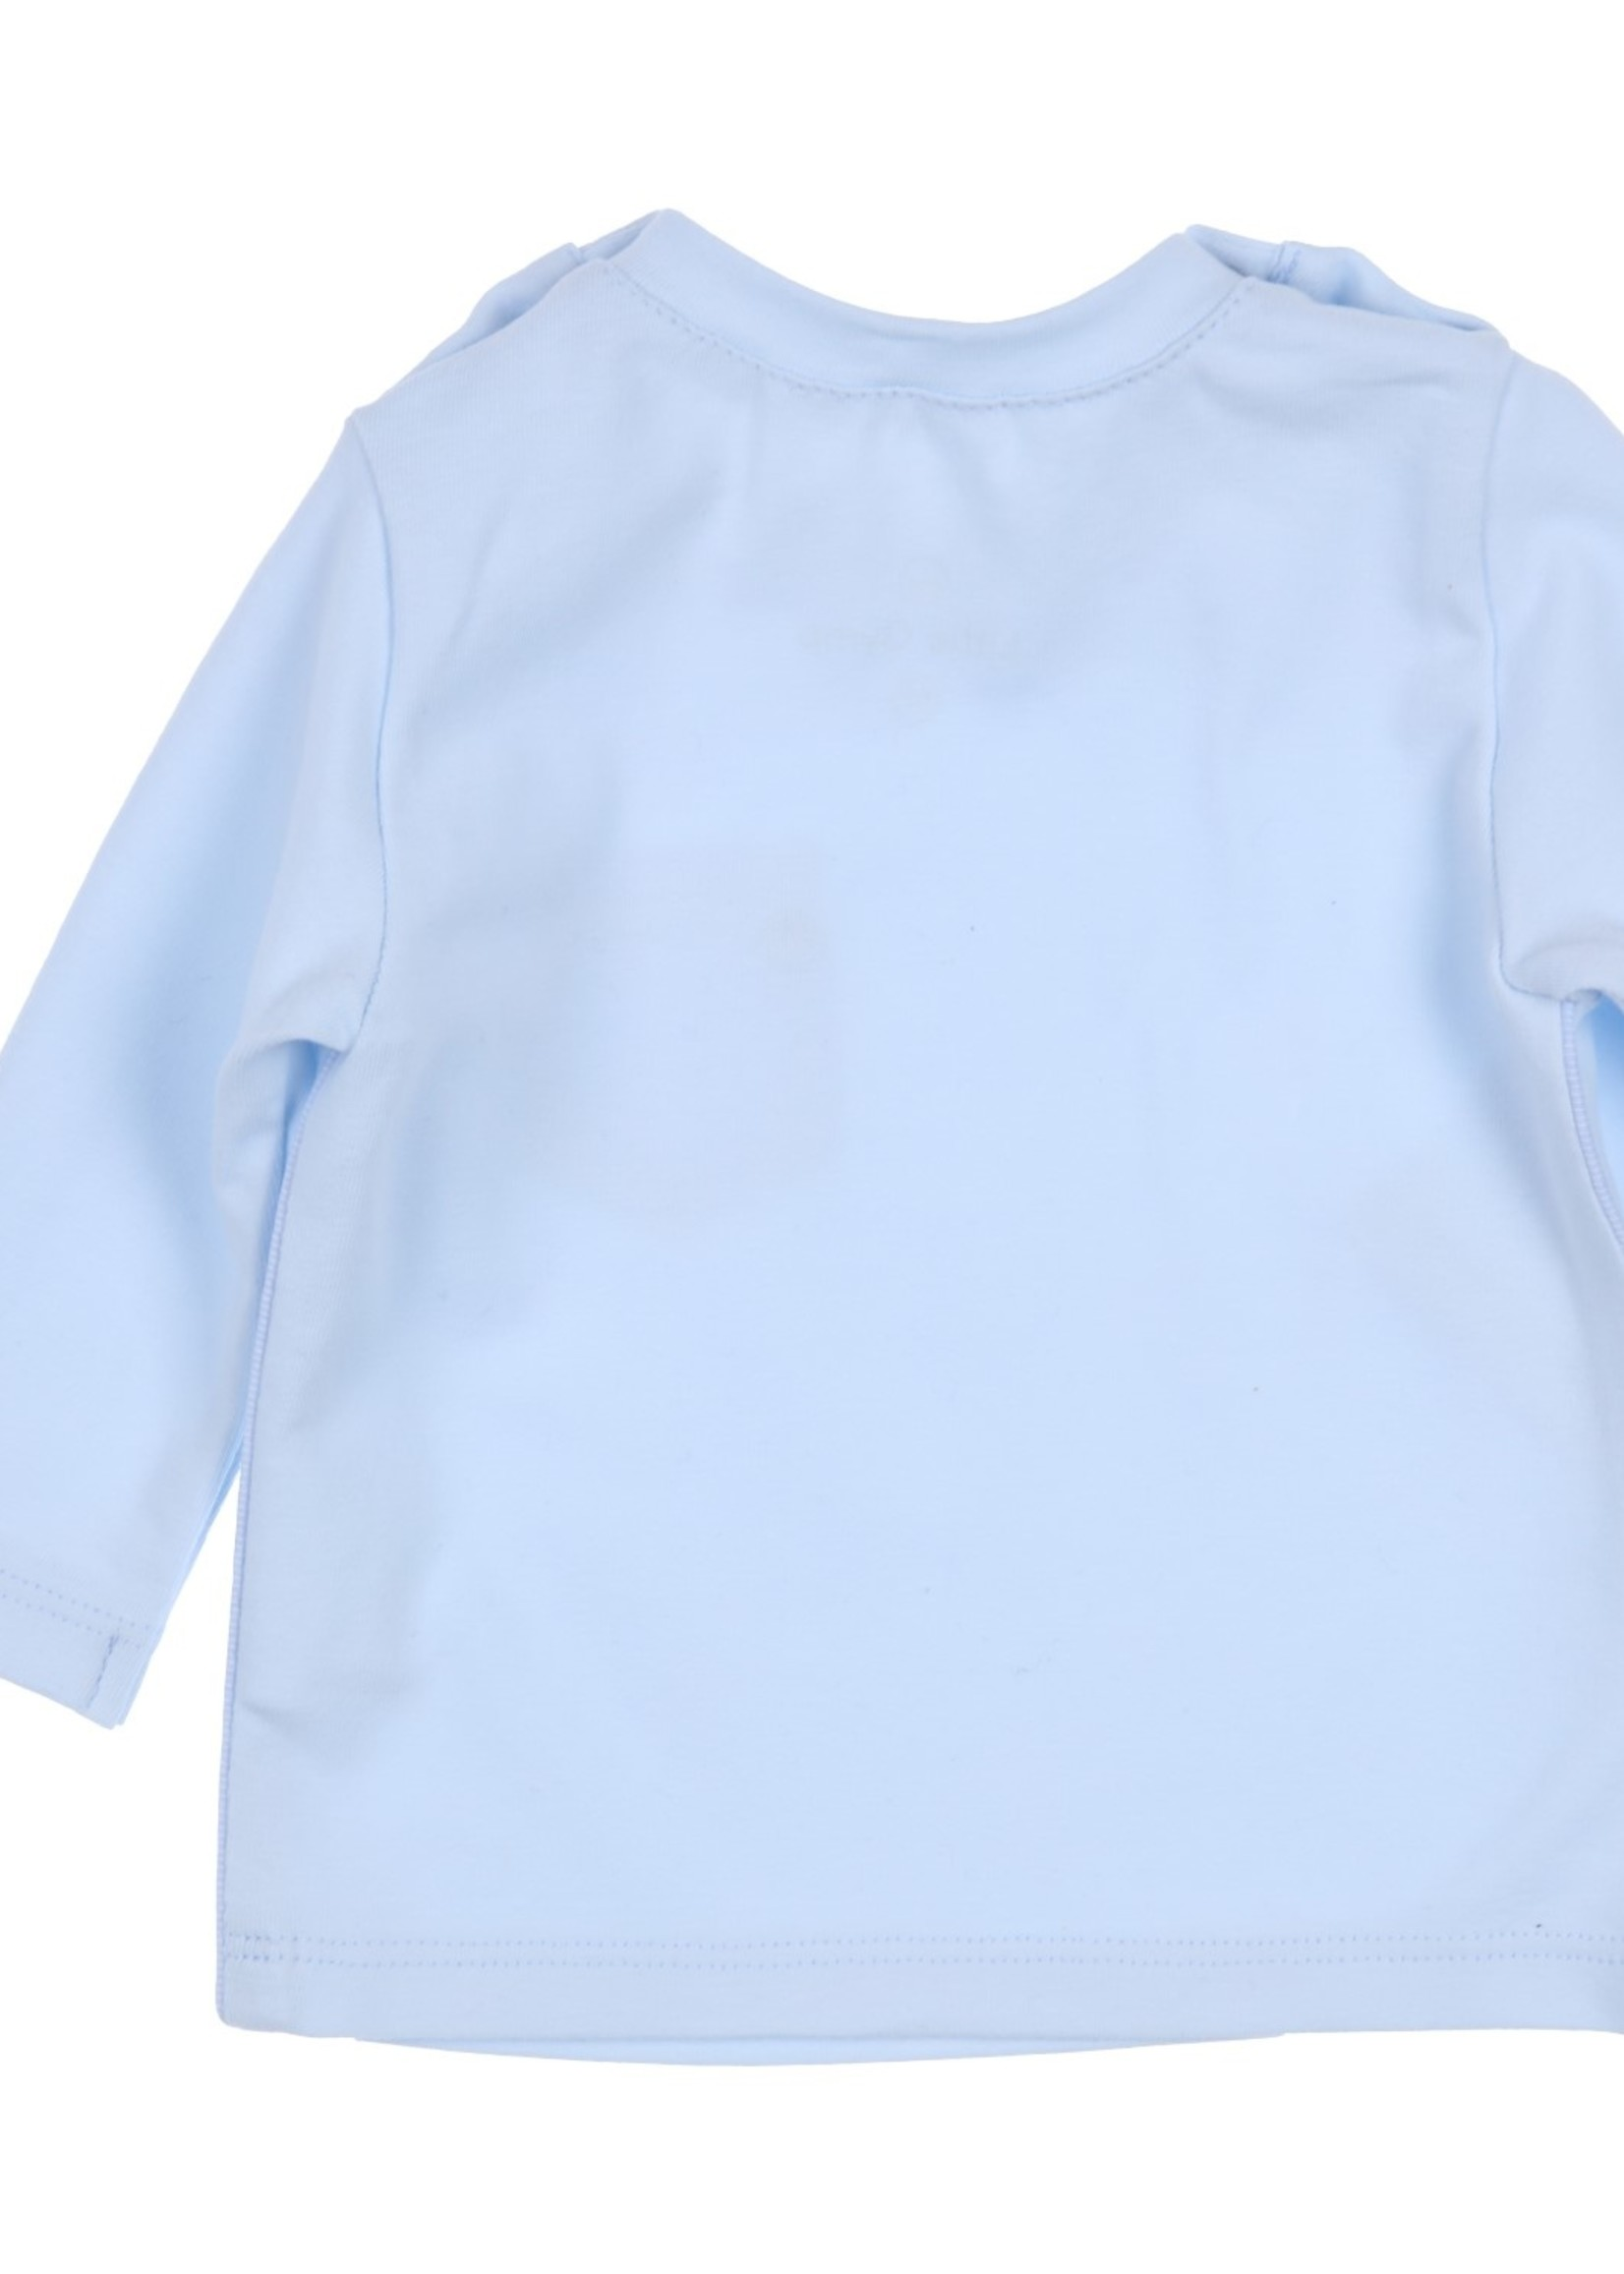 Gymp Gymp longsleeve passepoil and pocket lichtblauw